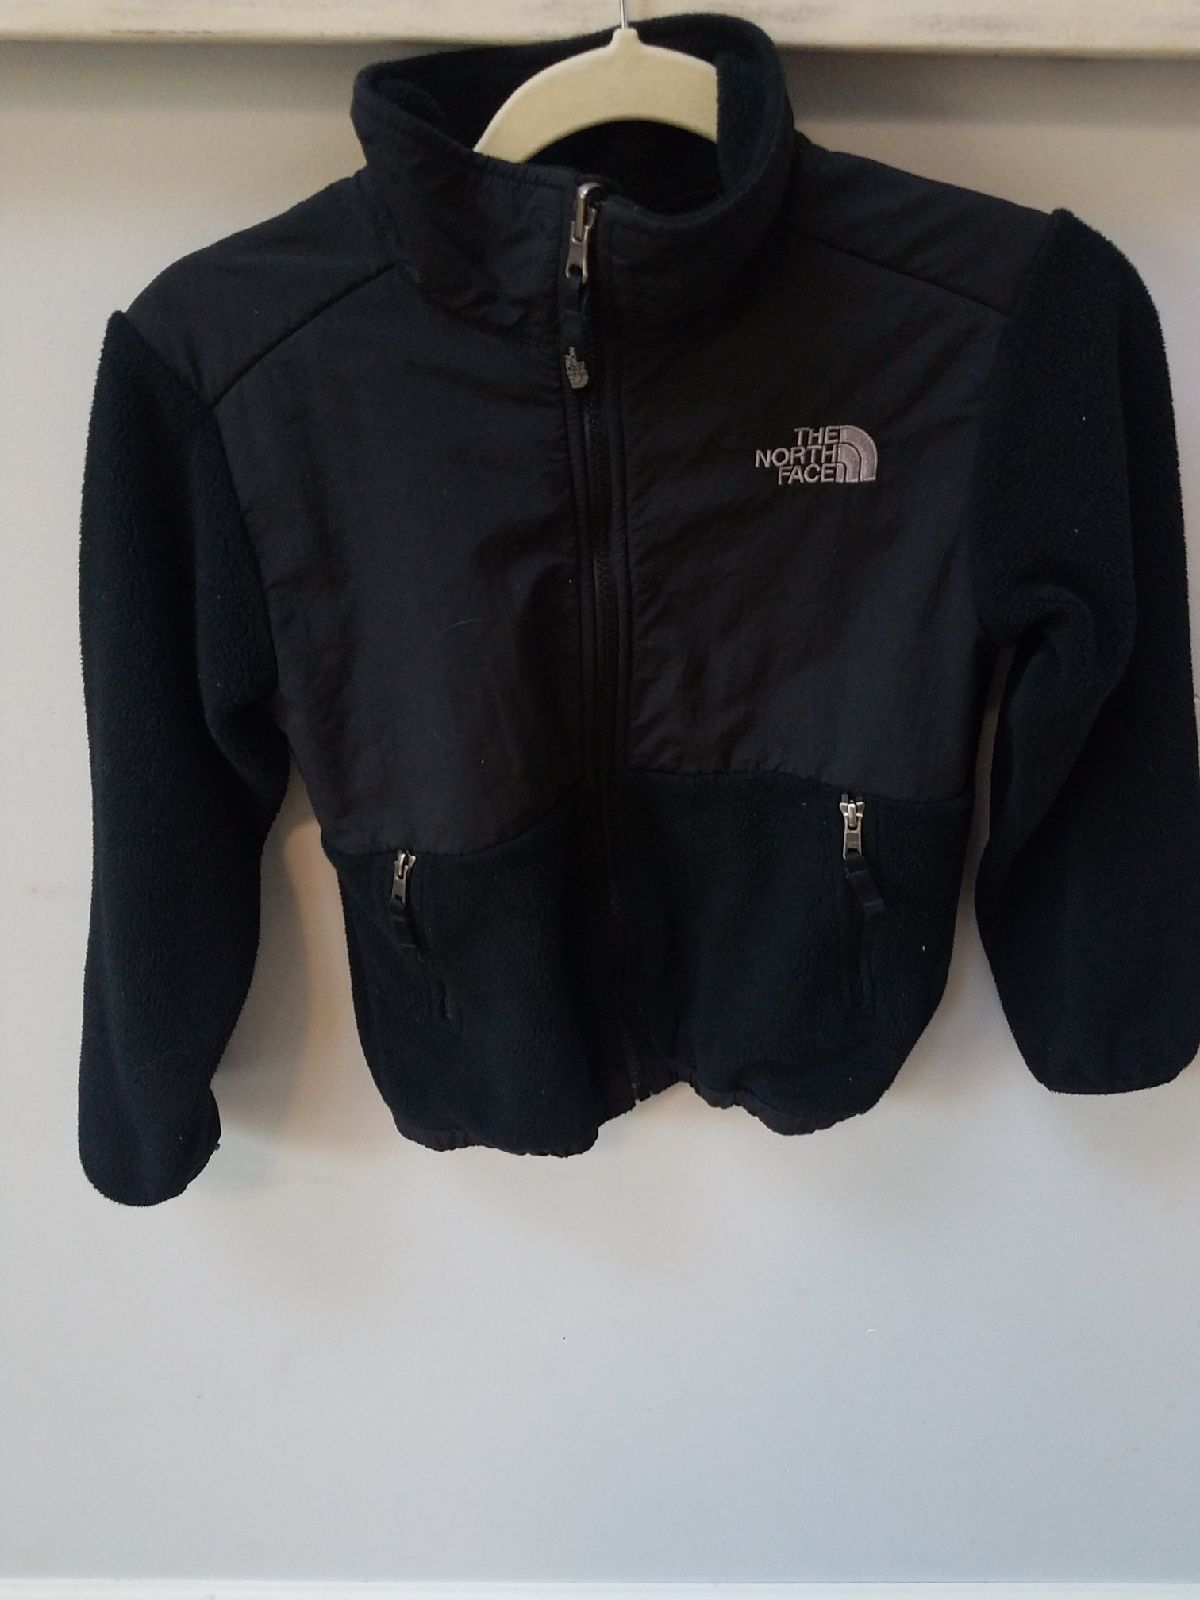 Boys Size 7 8 Northface Fleece This Fleece Is In Good Used Condition Normal North Face Wear With Washing Pl The North Face North Face Coat North Face Jacket [ 1600 x 1200 Pixel ]